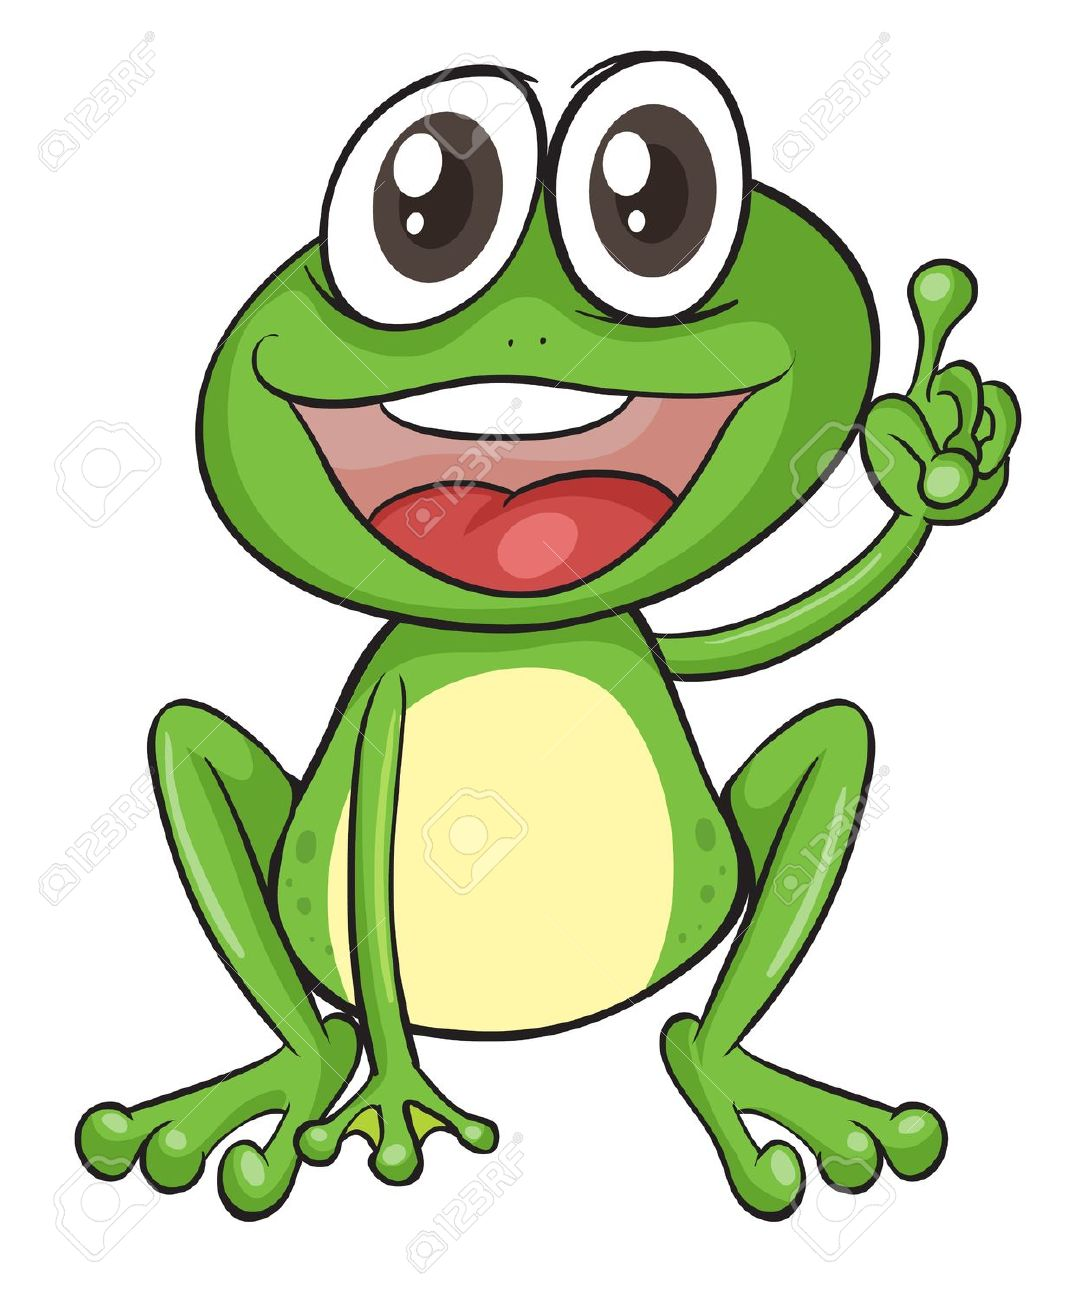 Free frog images clipart. Cute download best on